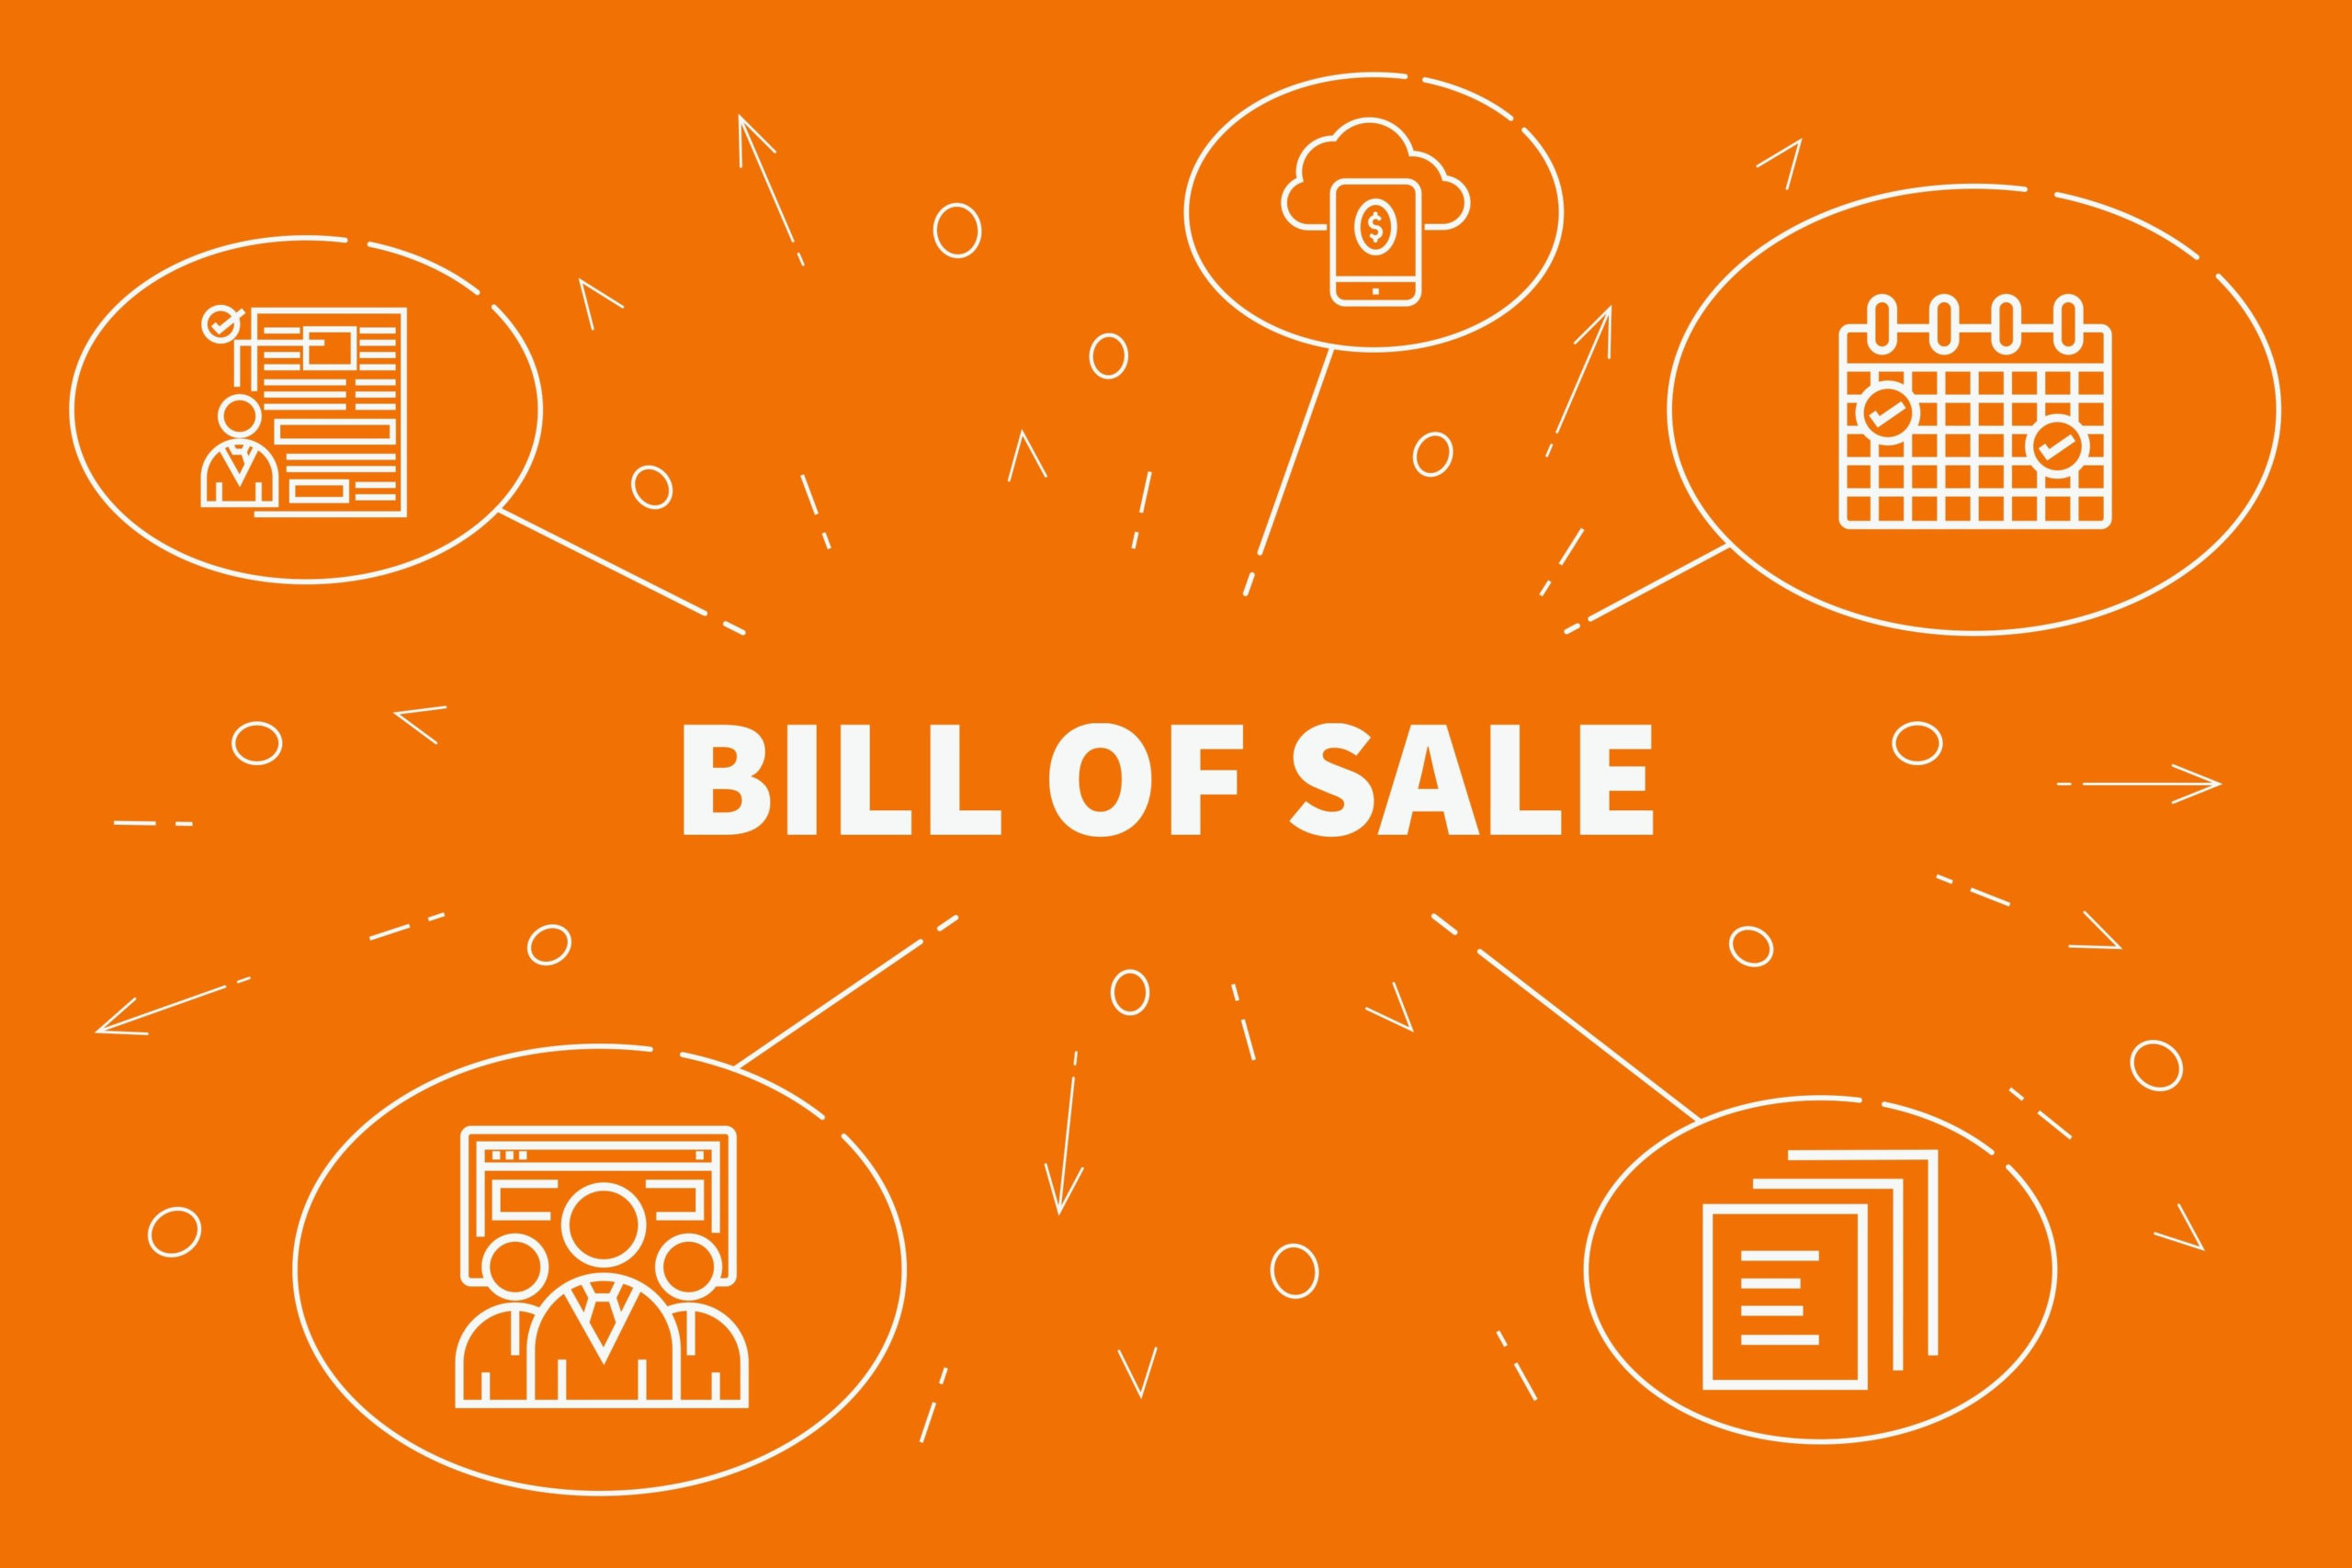 Model Warranty Bill Of Sale - How To Guide | Legalzoom